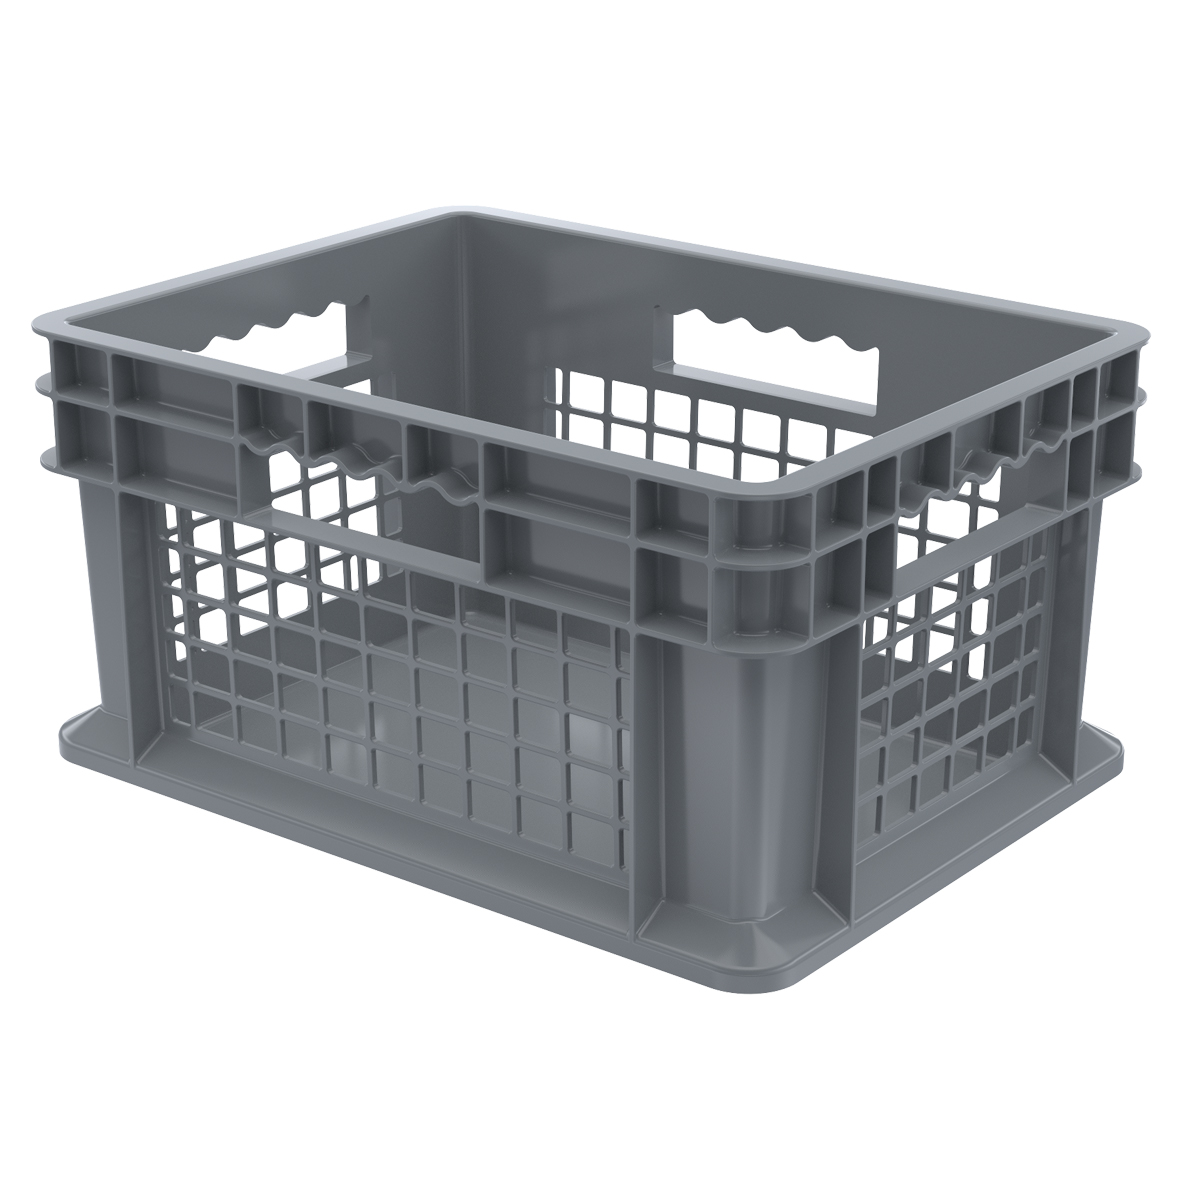 Straight Wall Container, Mesh/Solid 15-3/4 x 11-3/4 x 8-1/4, Gray (37278GREY).  This item sold in carton quantities of 12.